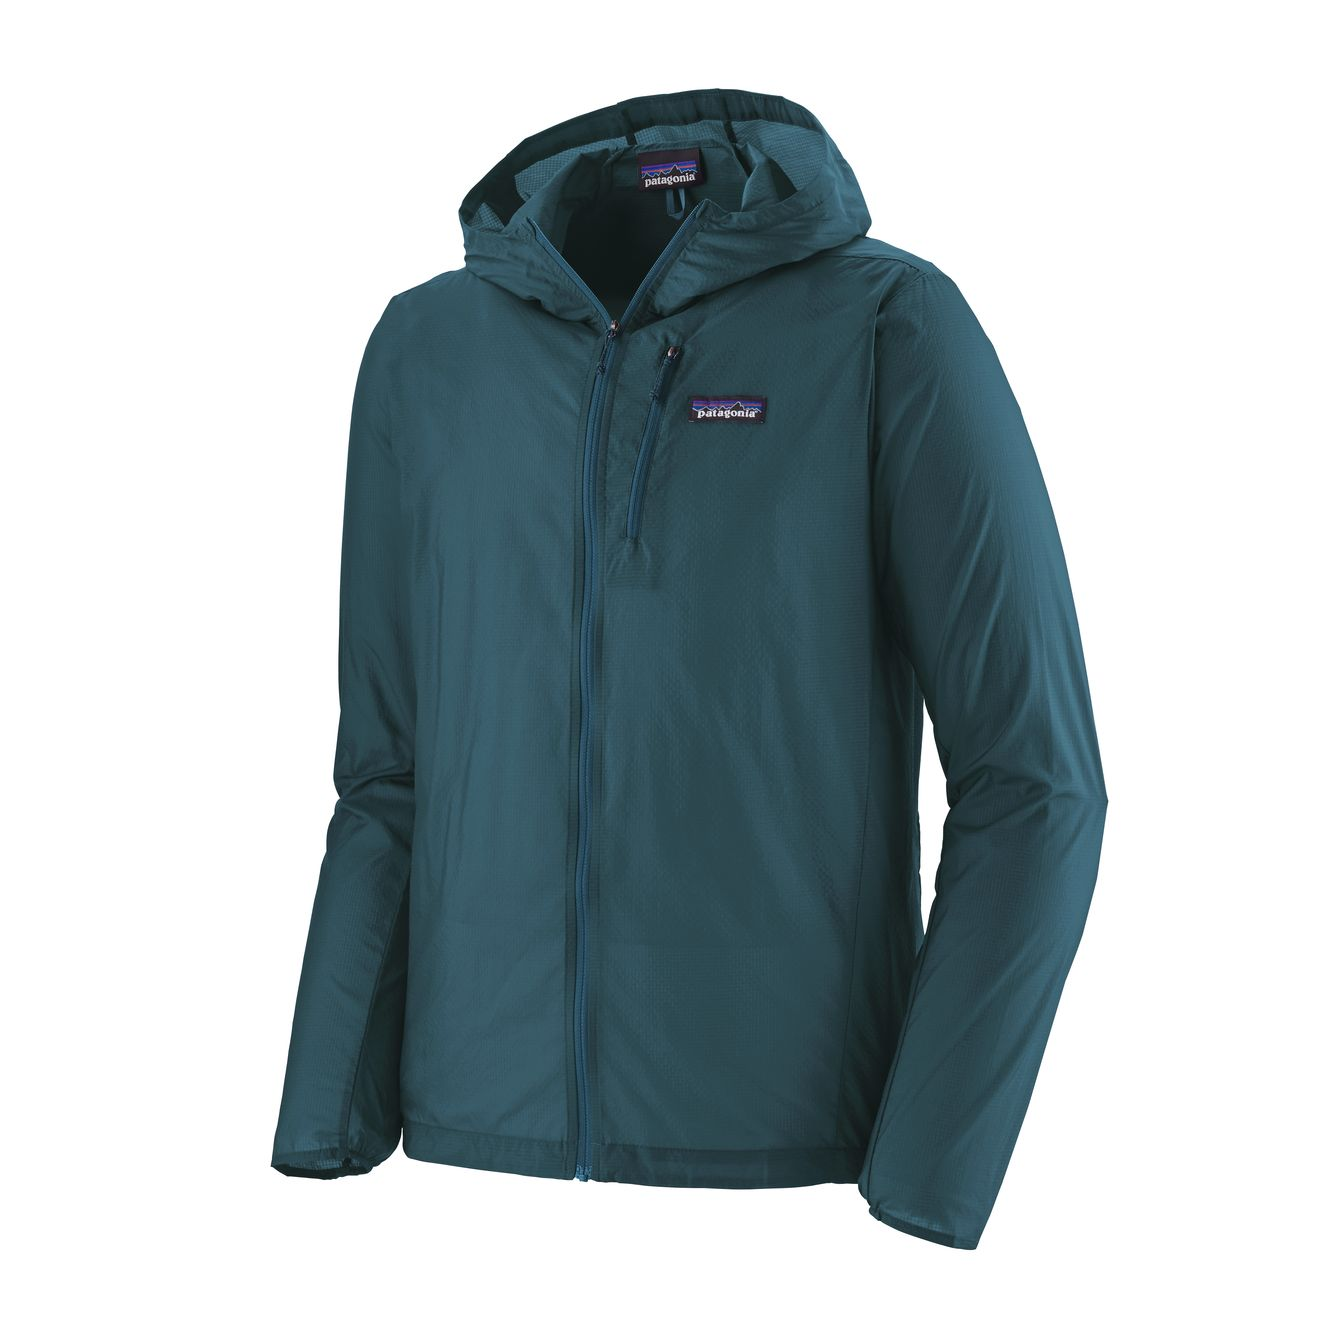 Patagonia Houdini Jacket - Veste coupe-vent homme